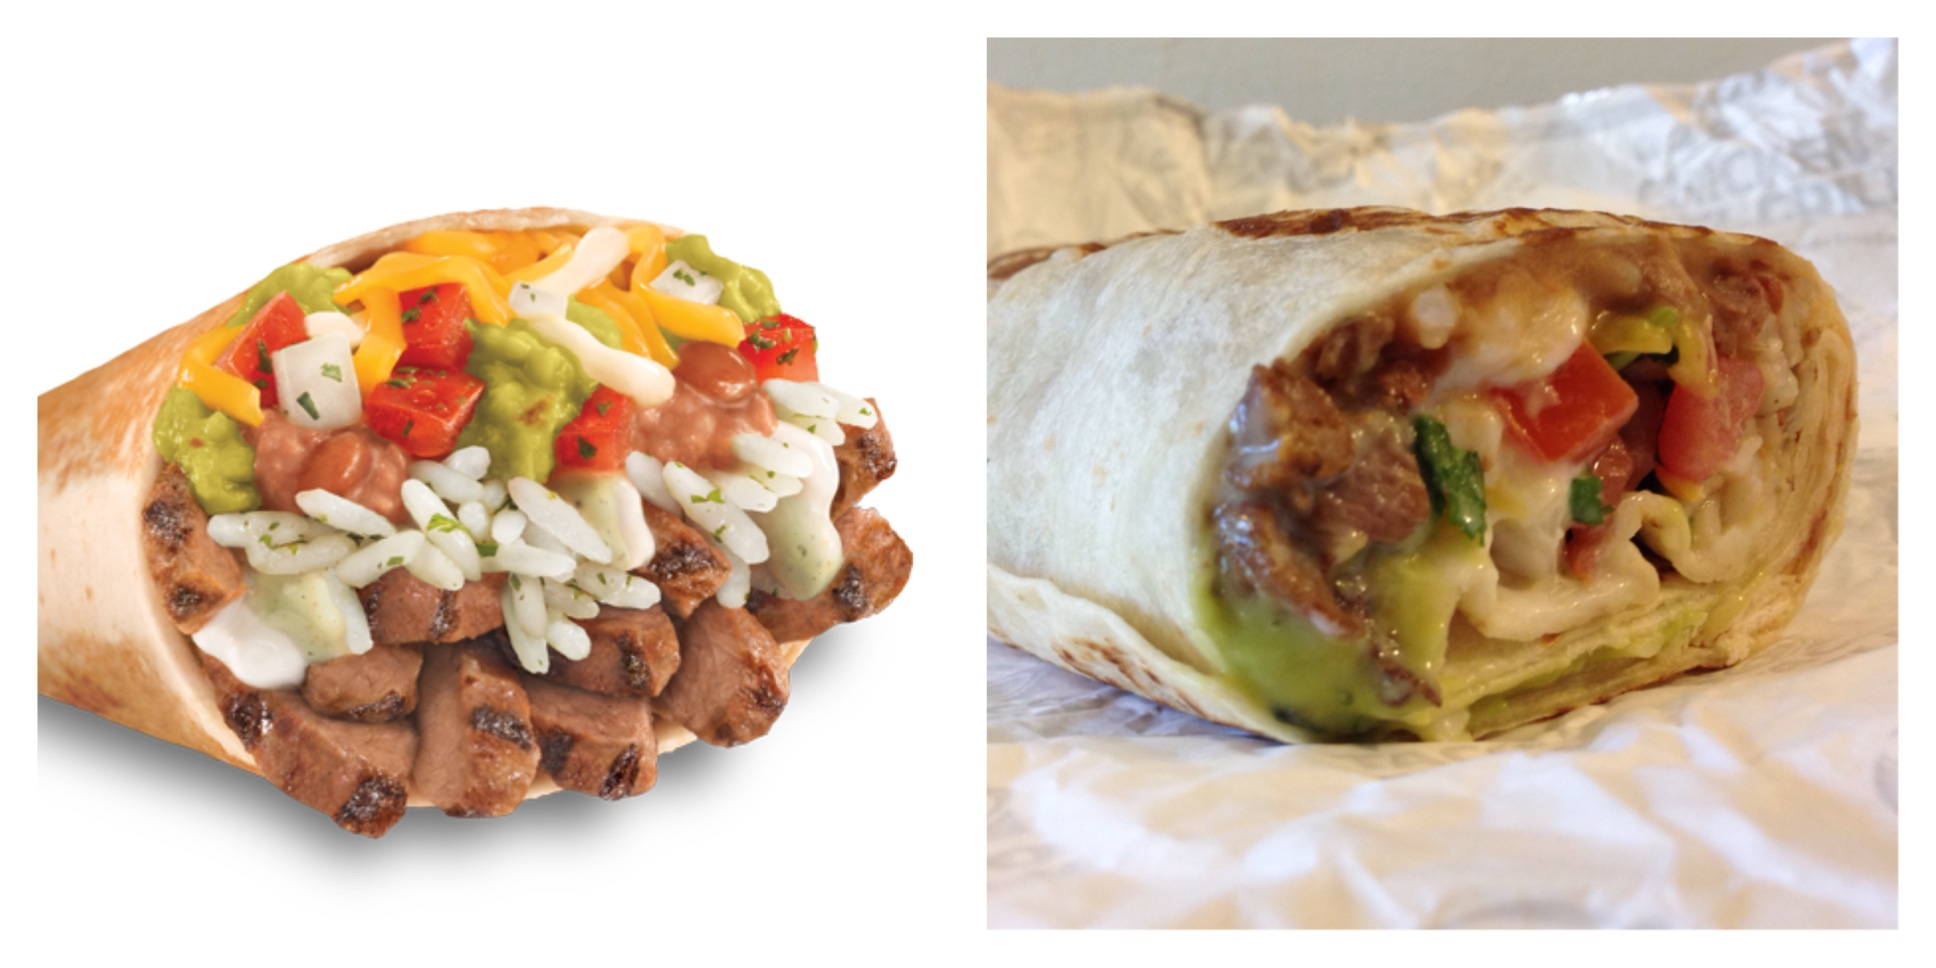 The XXL Grilled Stuft Steak Burrito from Taco Bell